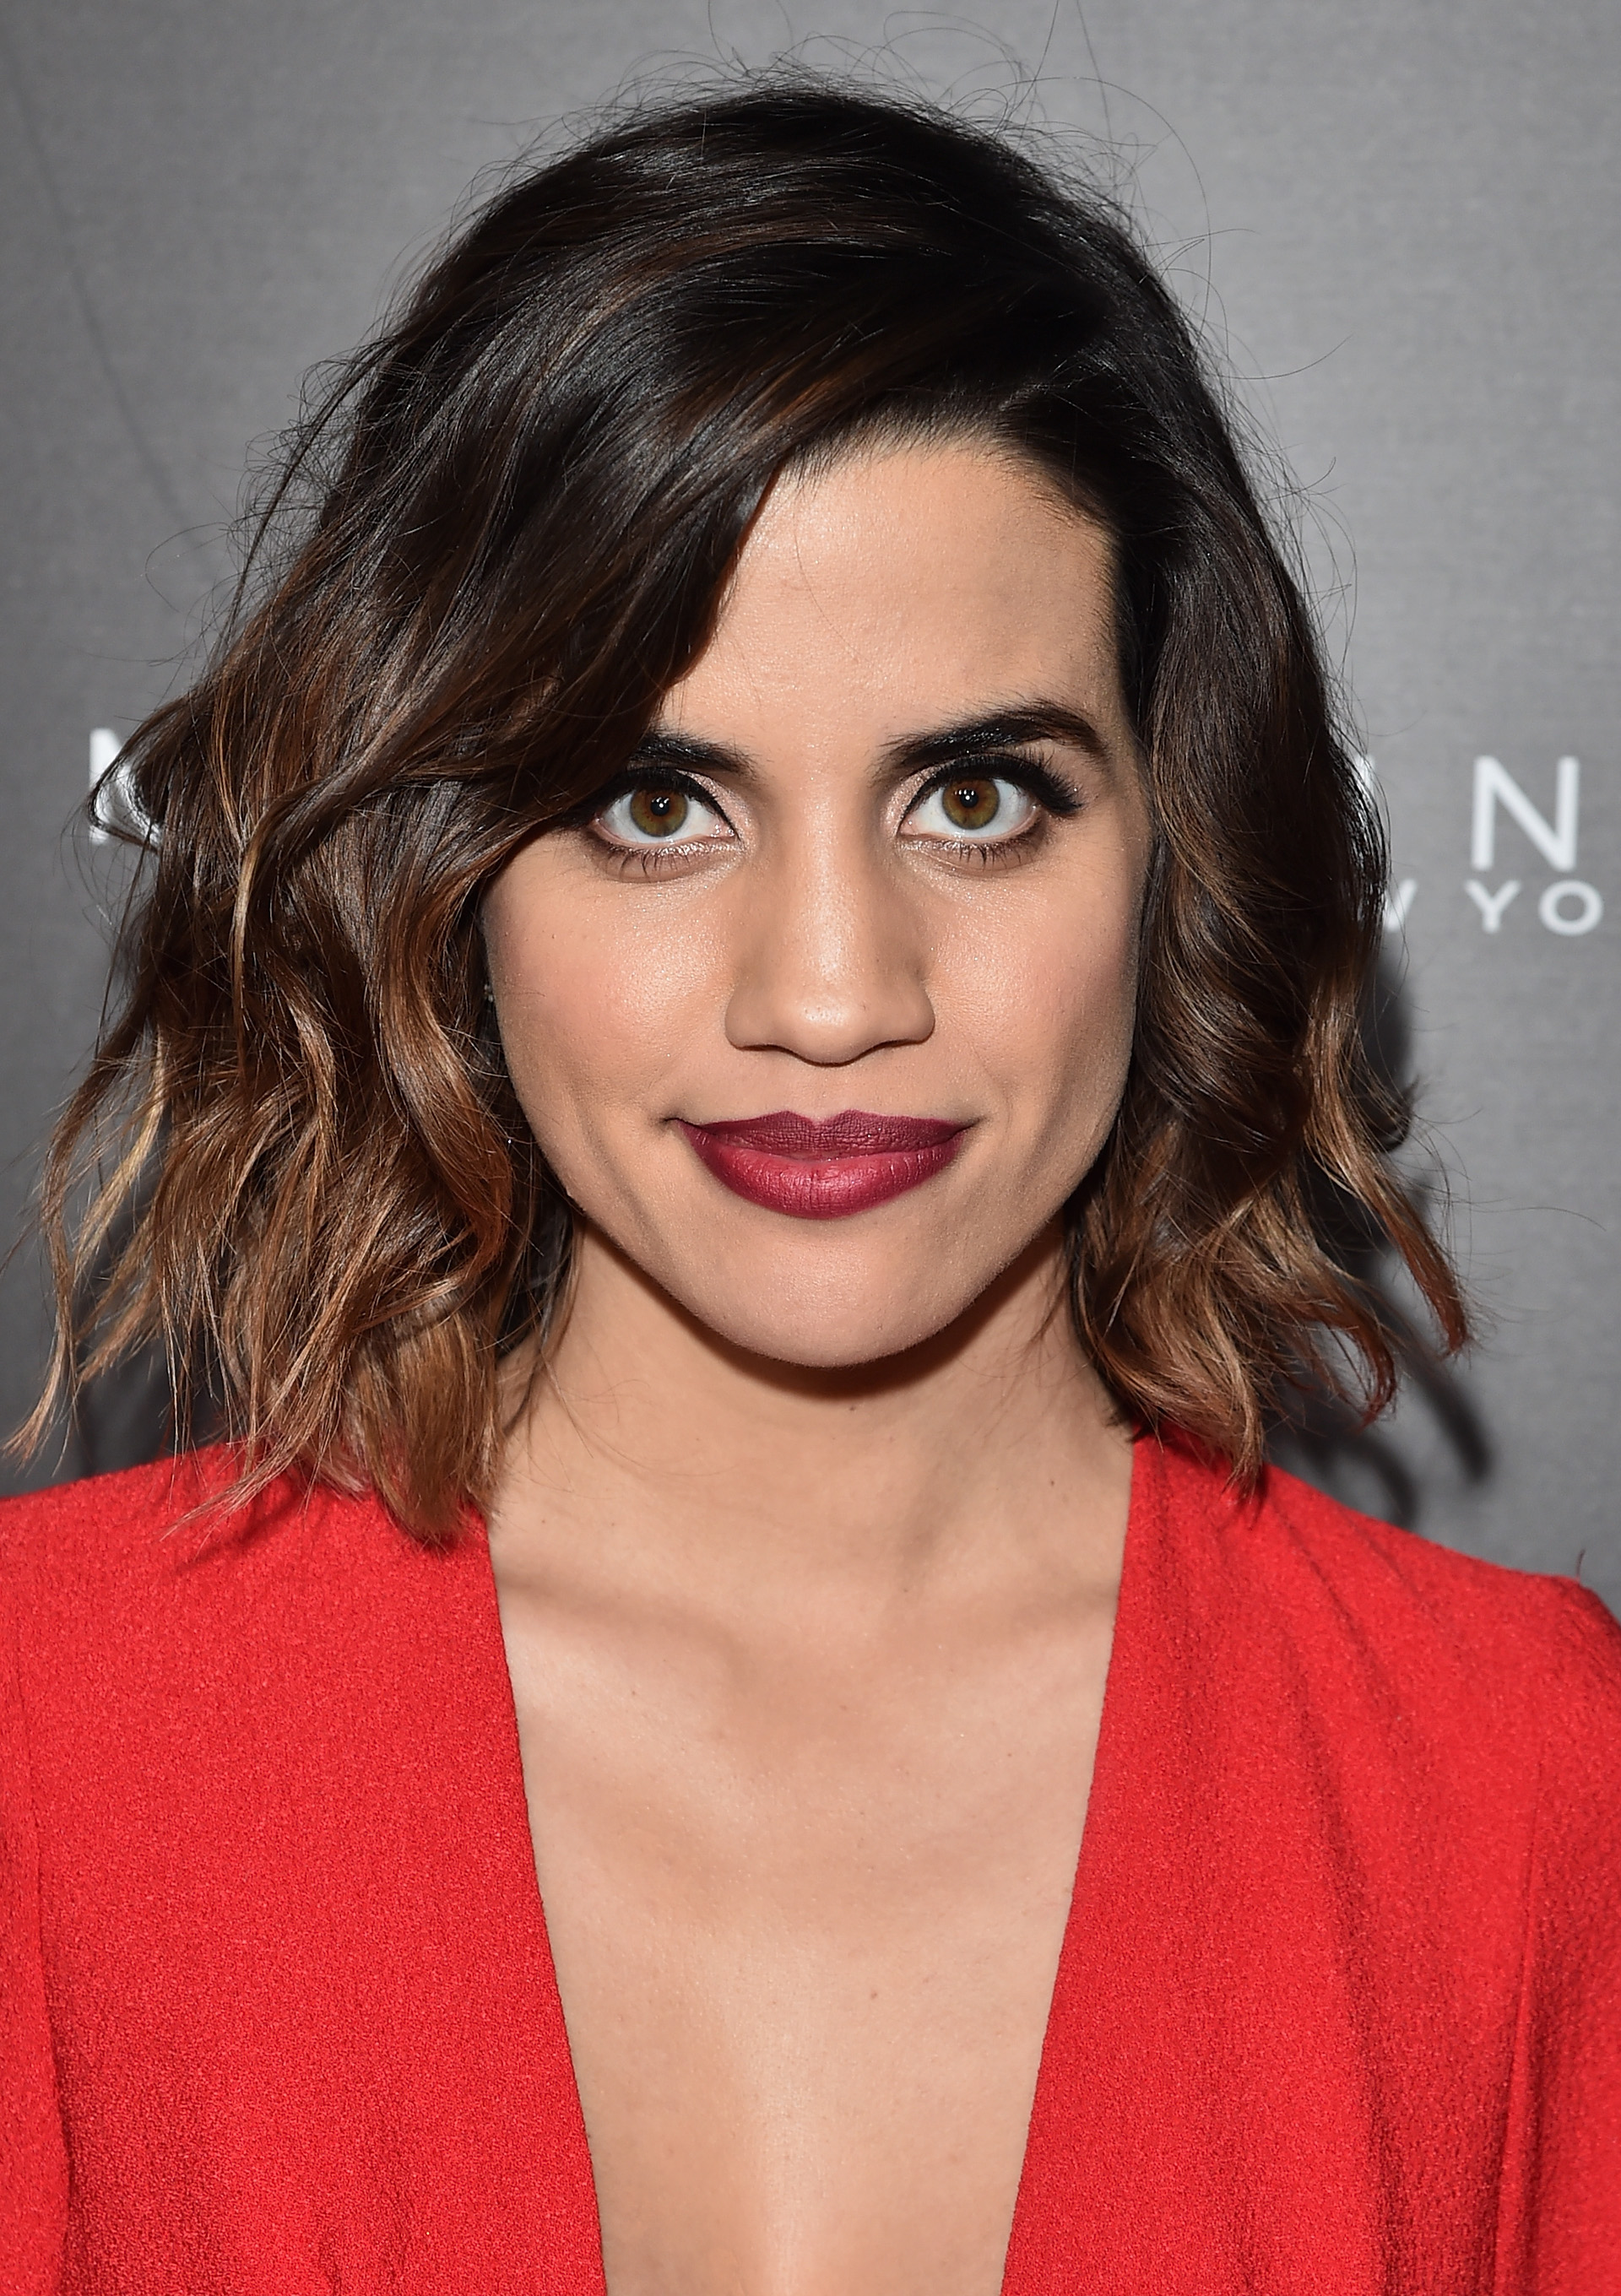 Actress Natalie Morales attends Entertainment Weekly's celebration honoring THe Screen Actors Guild presented by Maybeline at Chateau Marmont on January 29, 2016 in Los Angeles, California. (Getty Images)